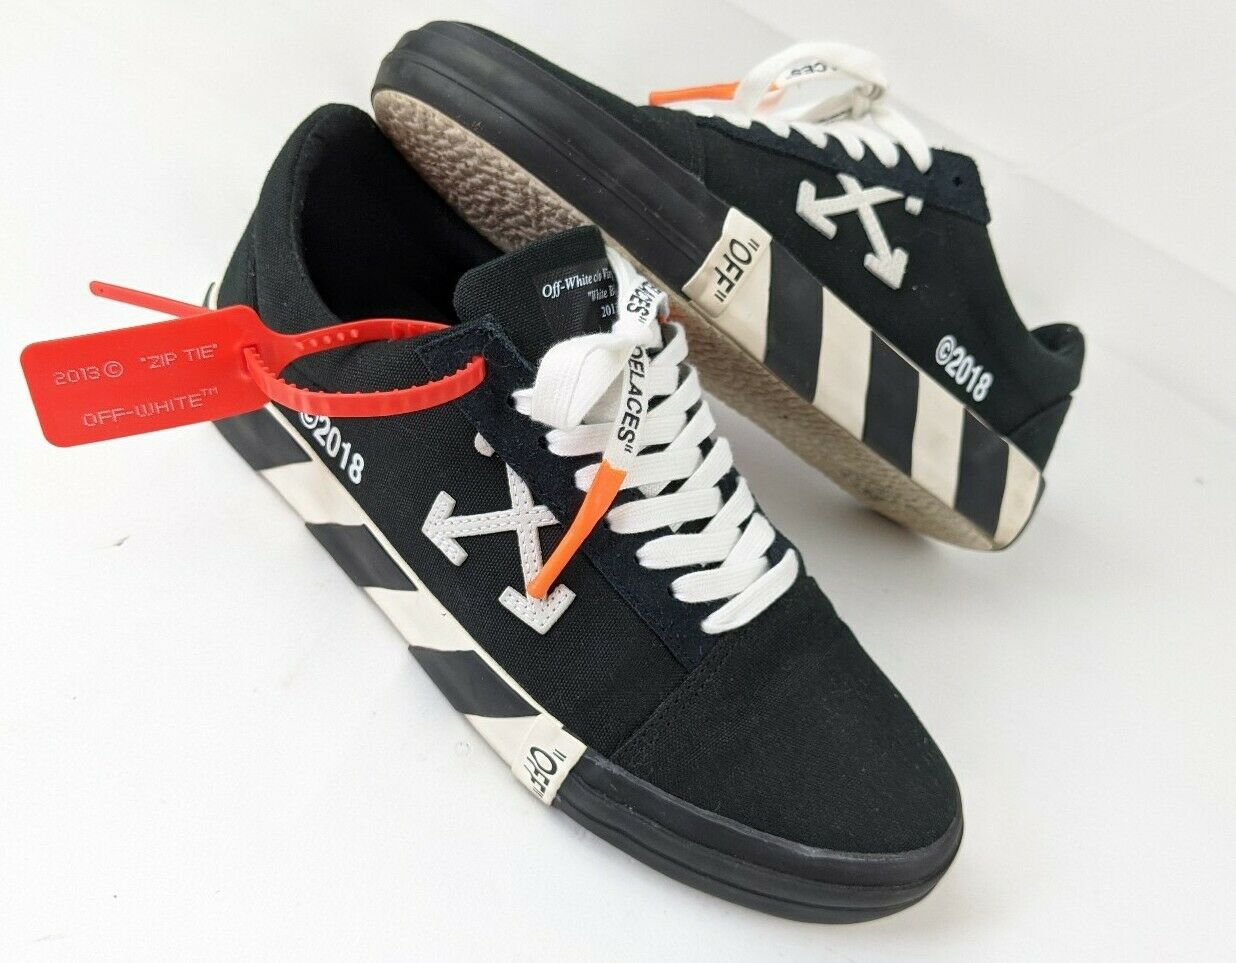 Off White Low Vulc Black White